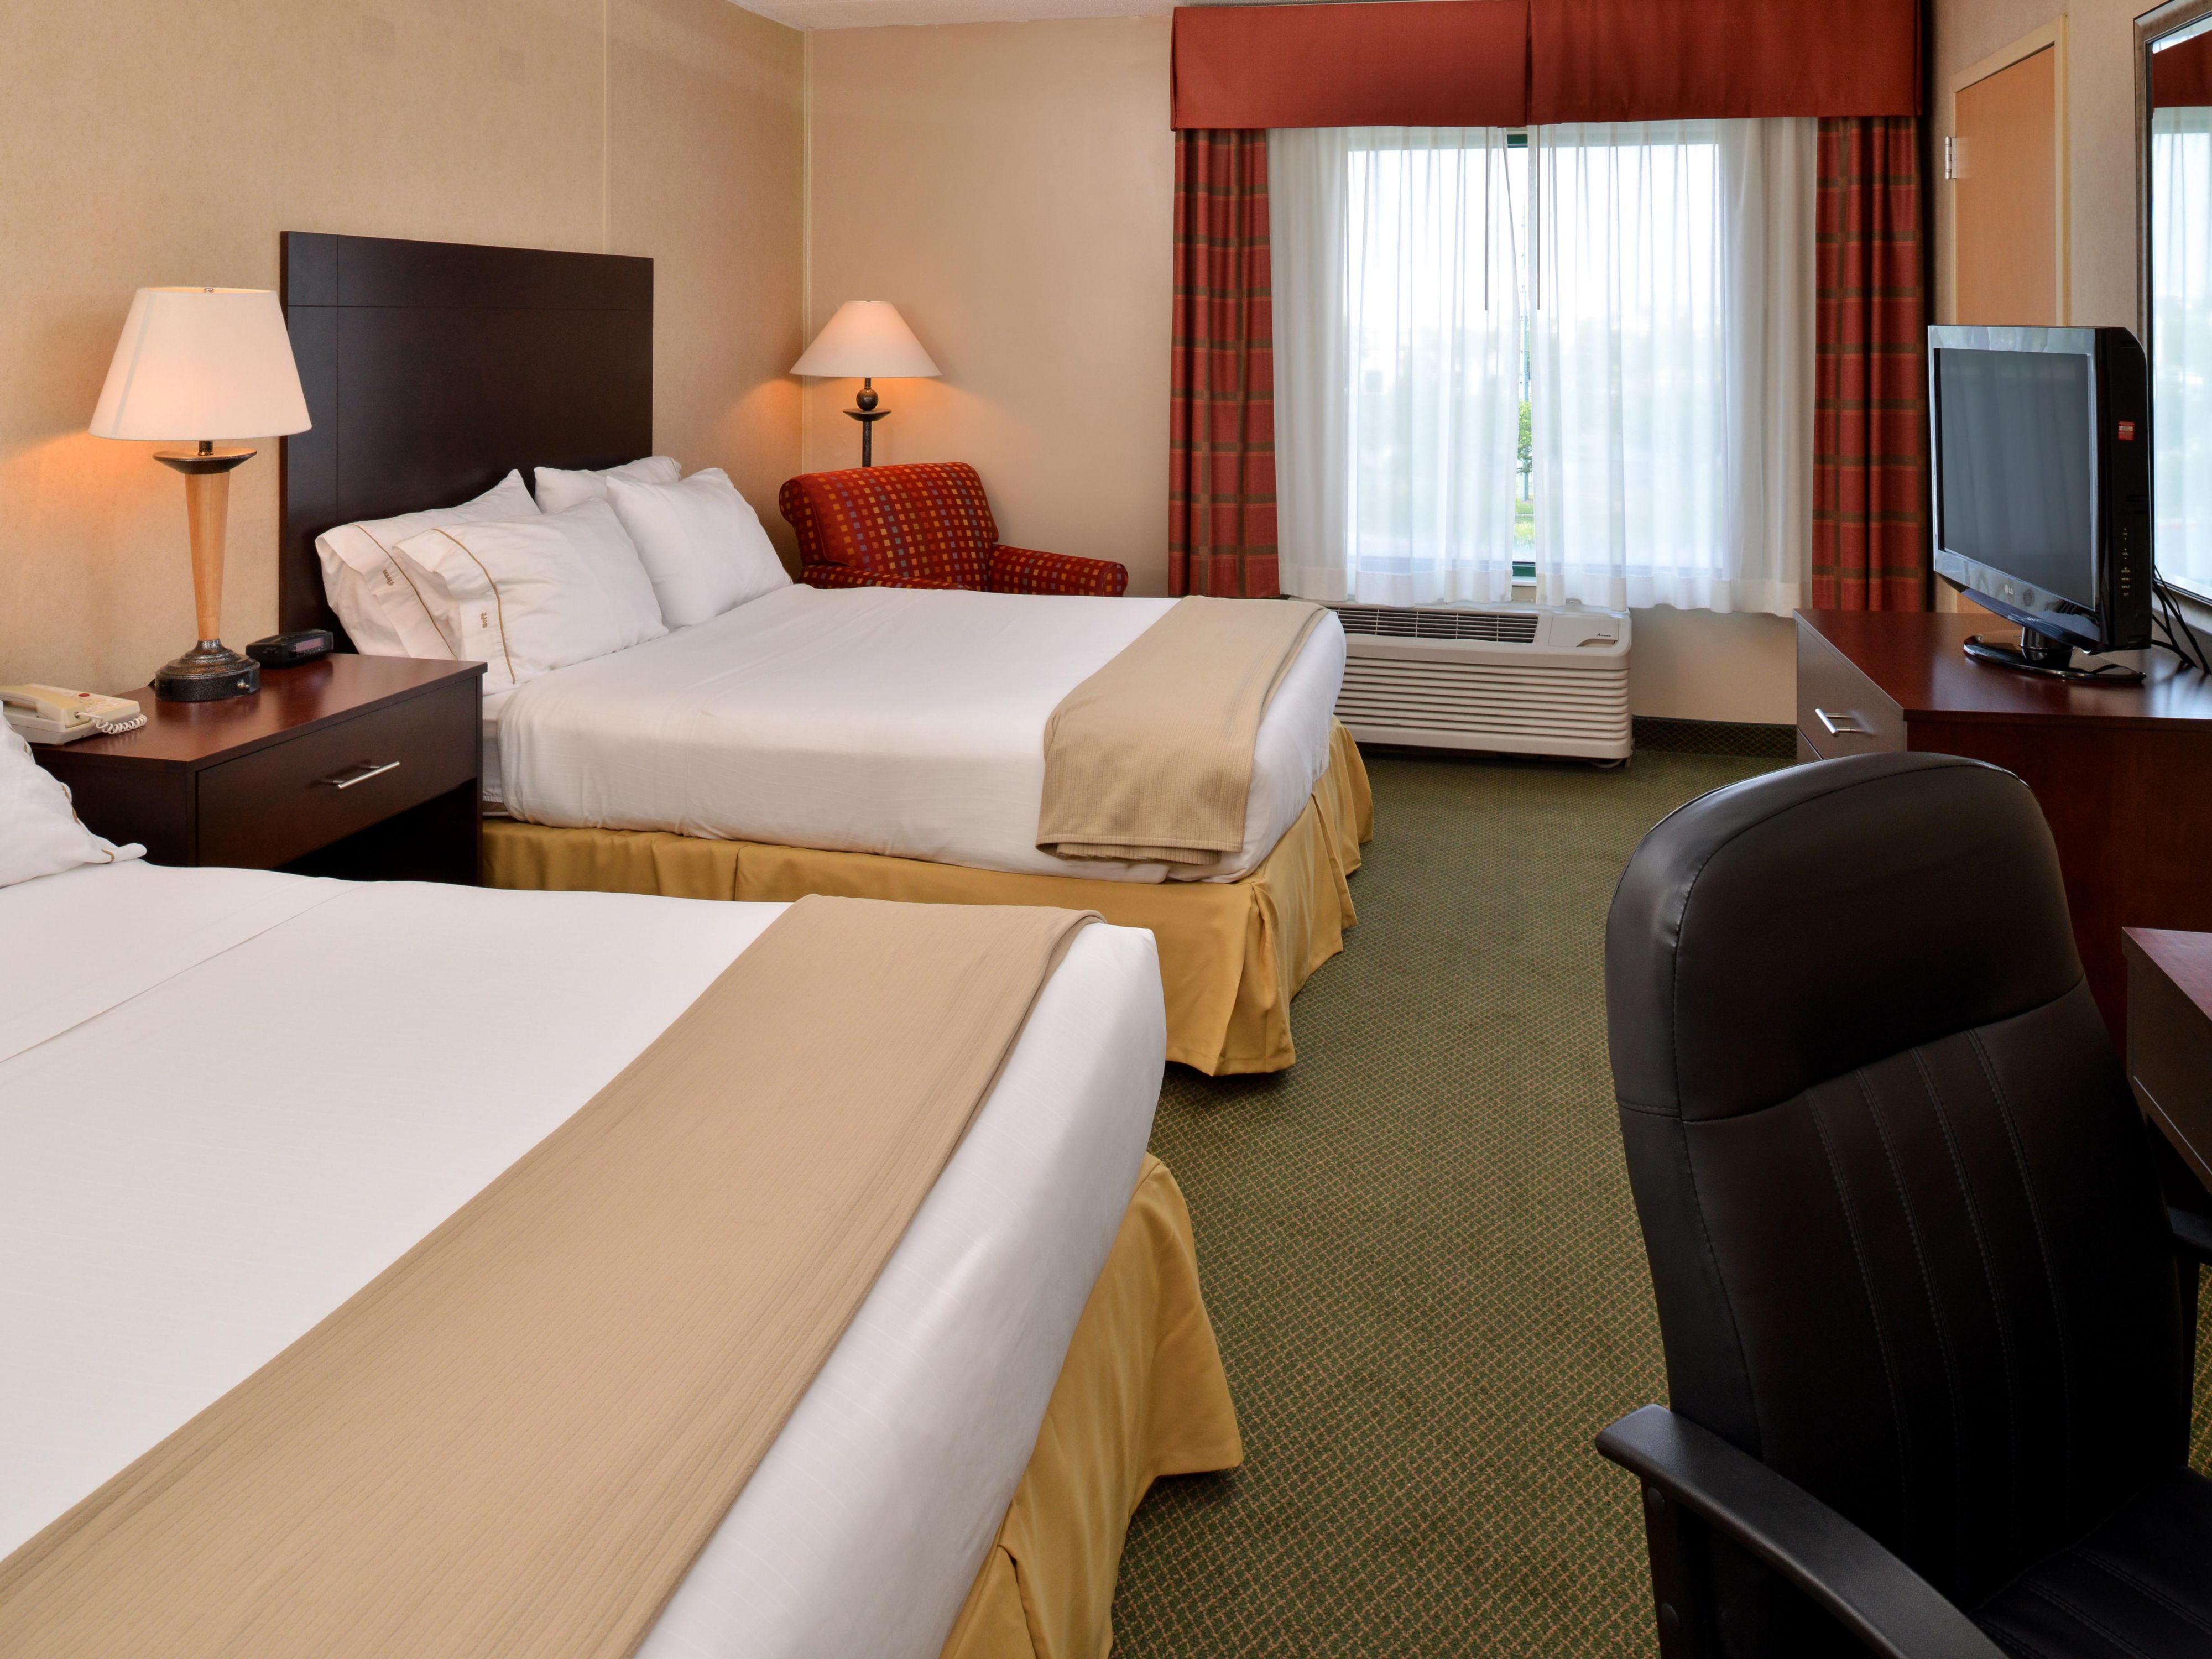 Relax and enjoy our newly renovated room with two queen beds